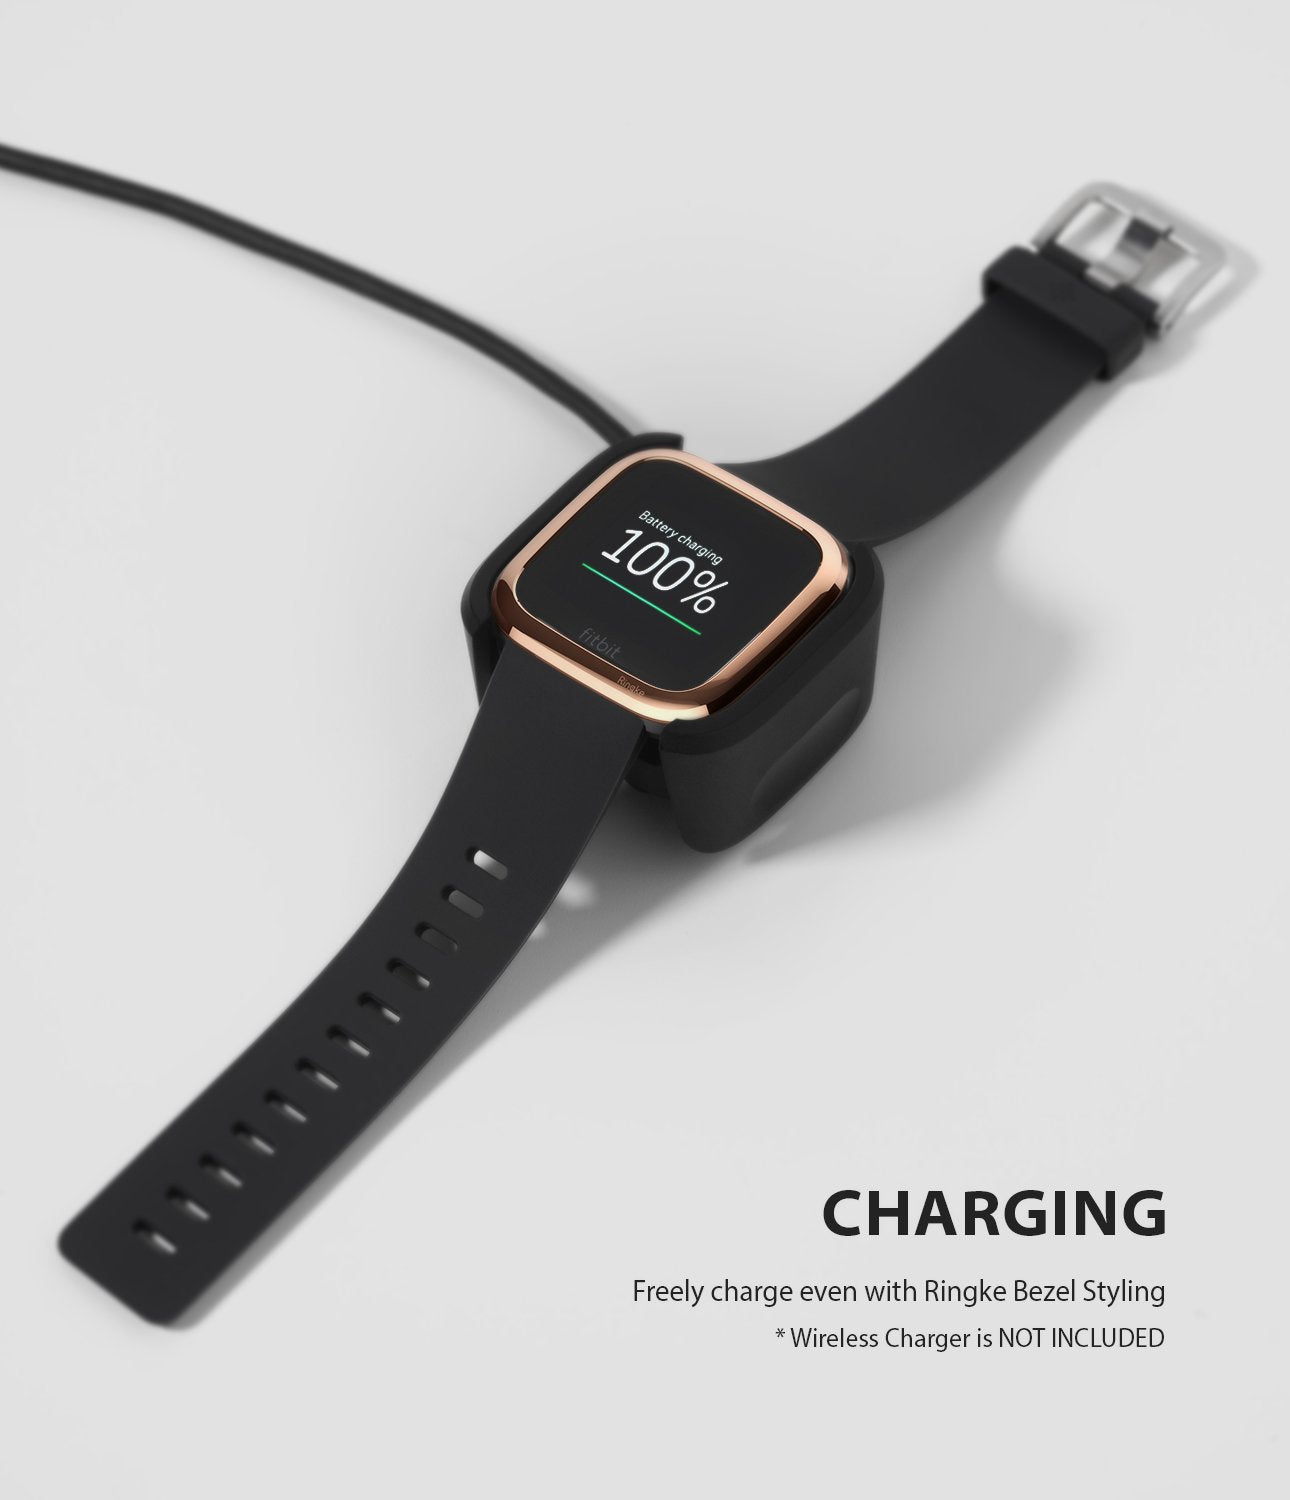 Ringke Bezel Styling Fitbit Versa 2, Full Stainless Steel Frame, Rose Gold, Stainless Steel, 2-02 ST, wireless charging compatible